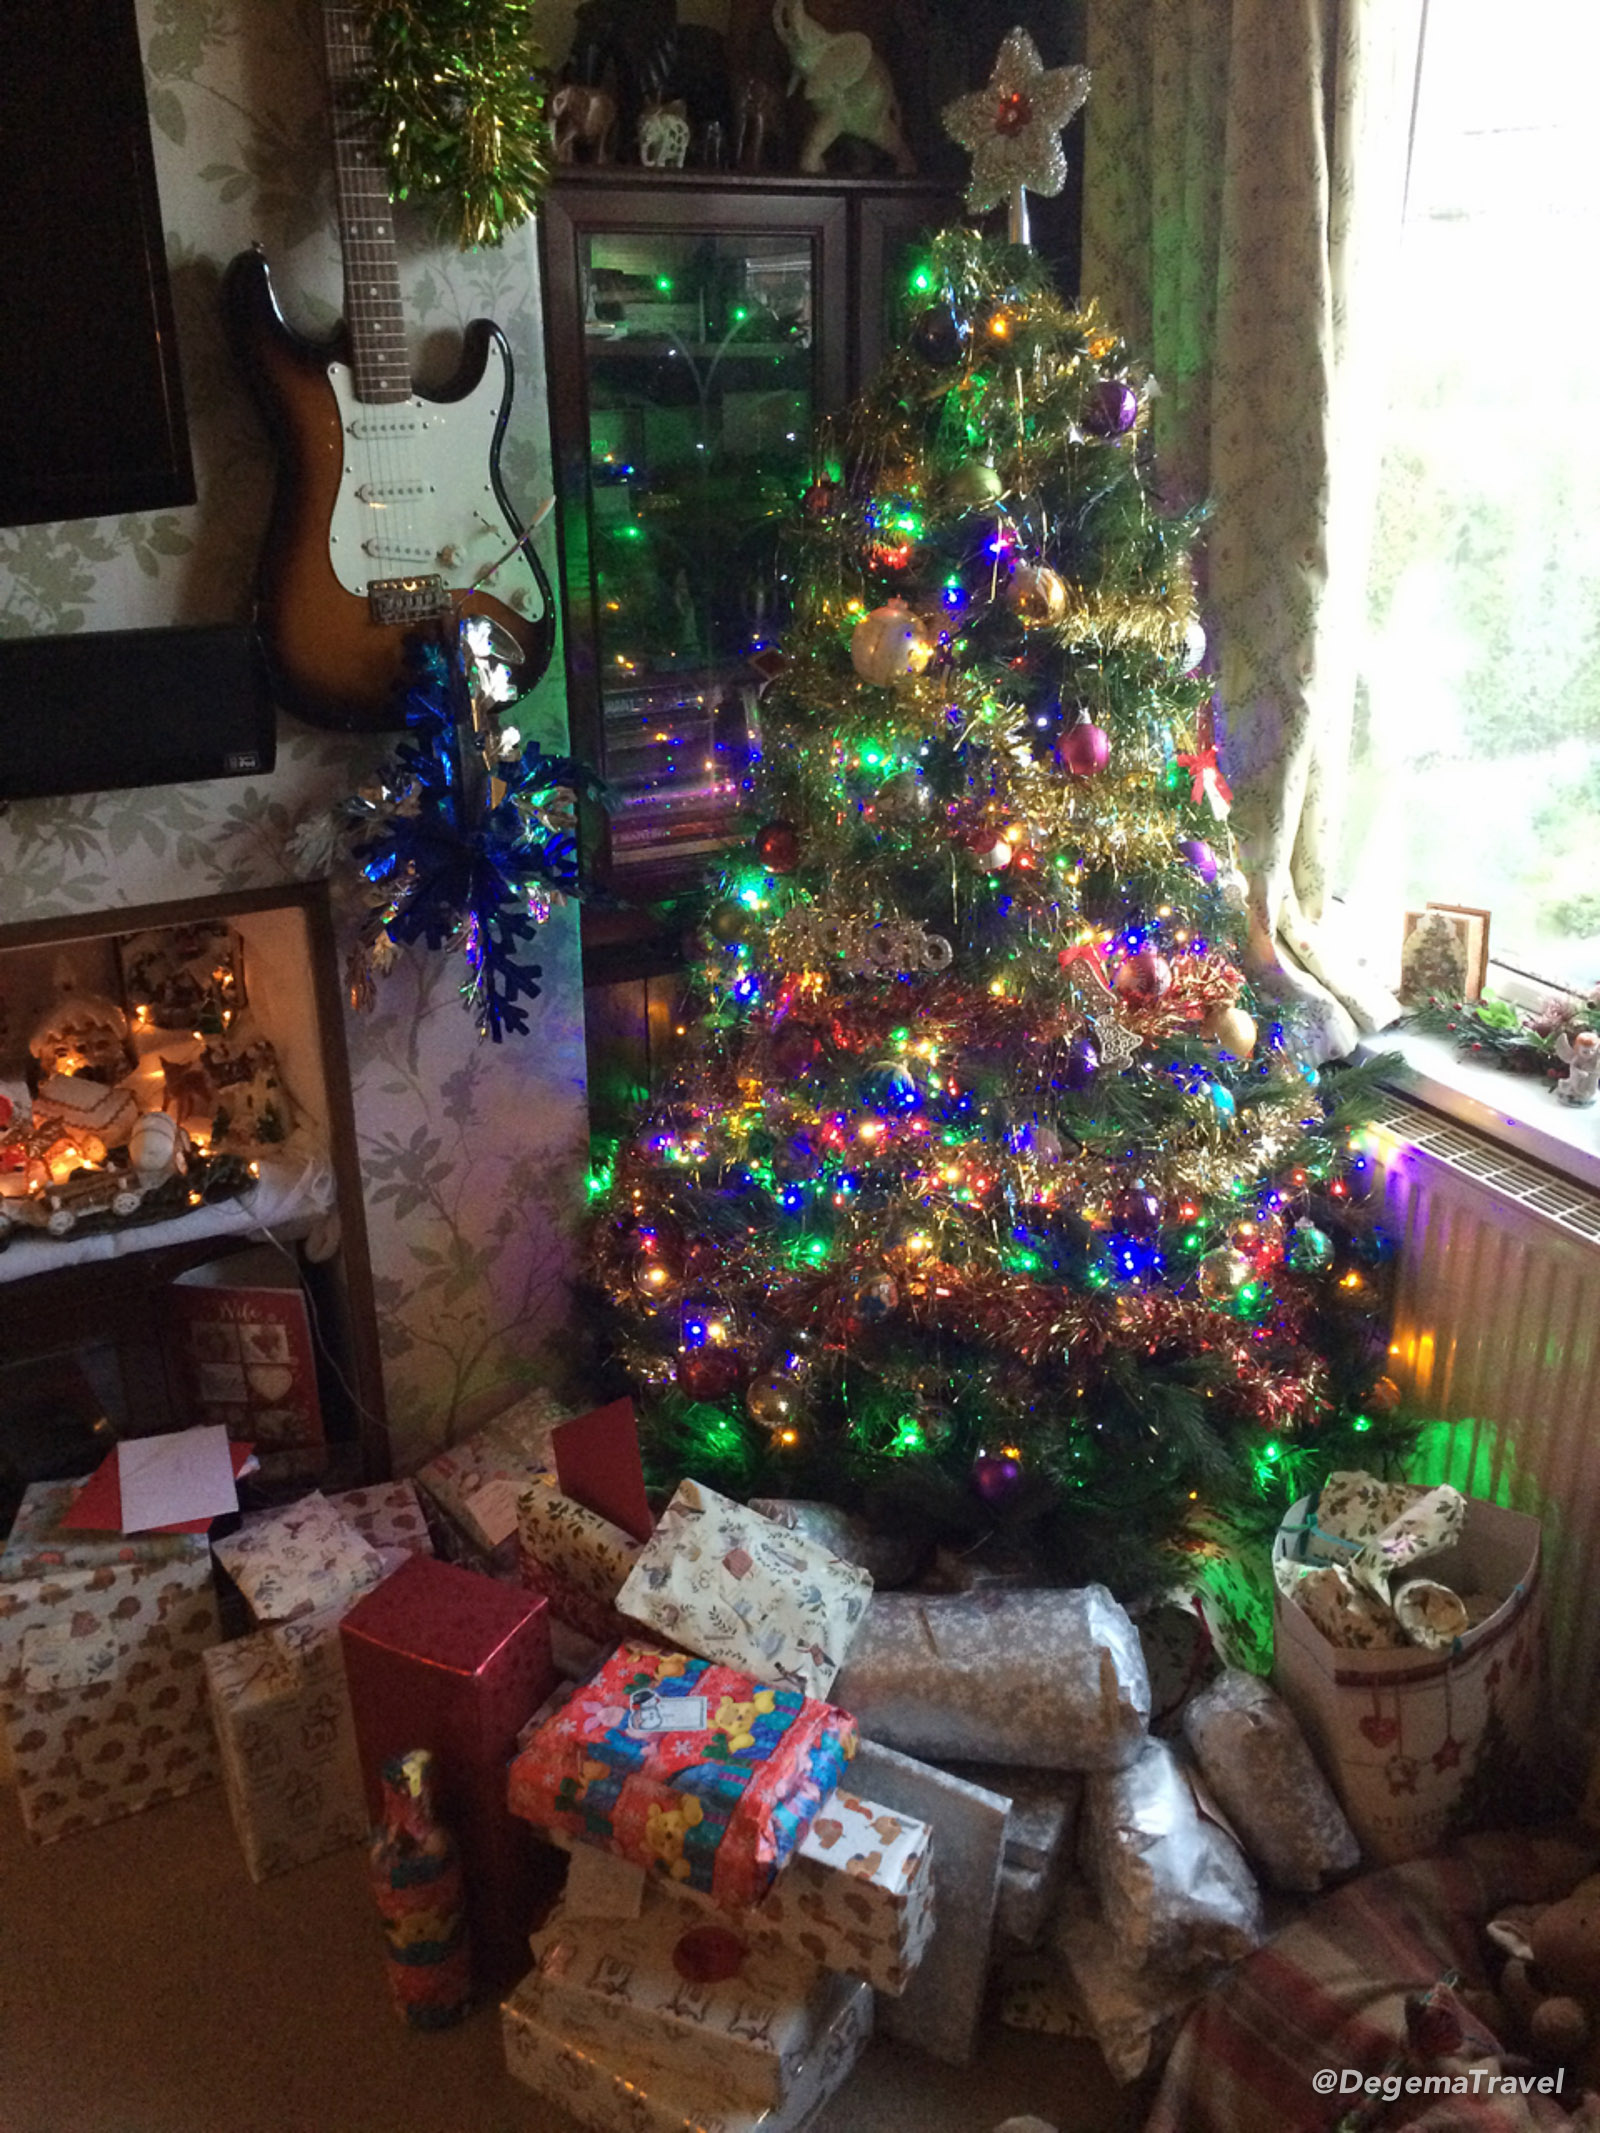 Mum's main Christmas tree, surrounded by gifts, in Selby, UK